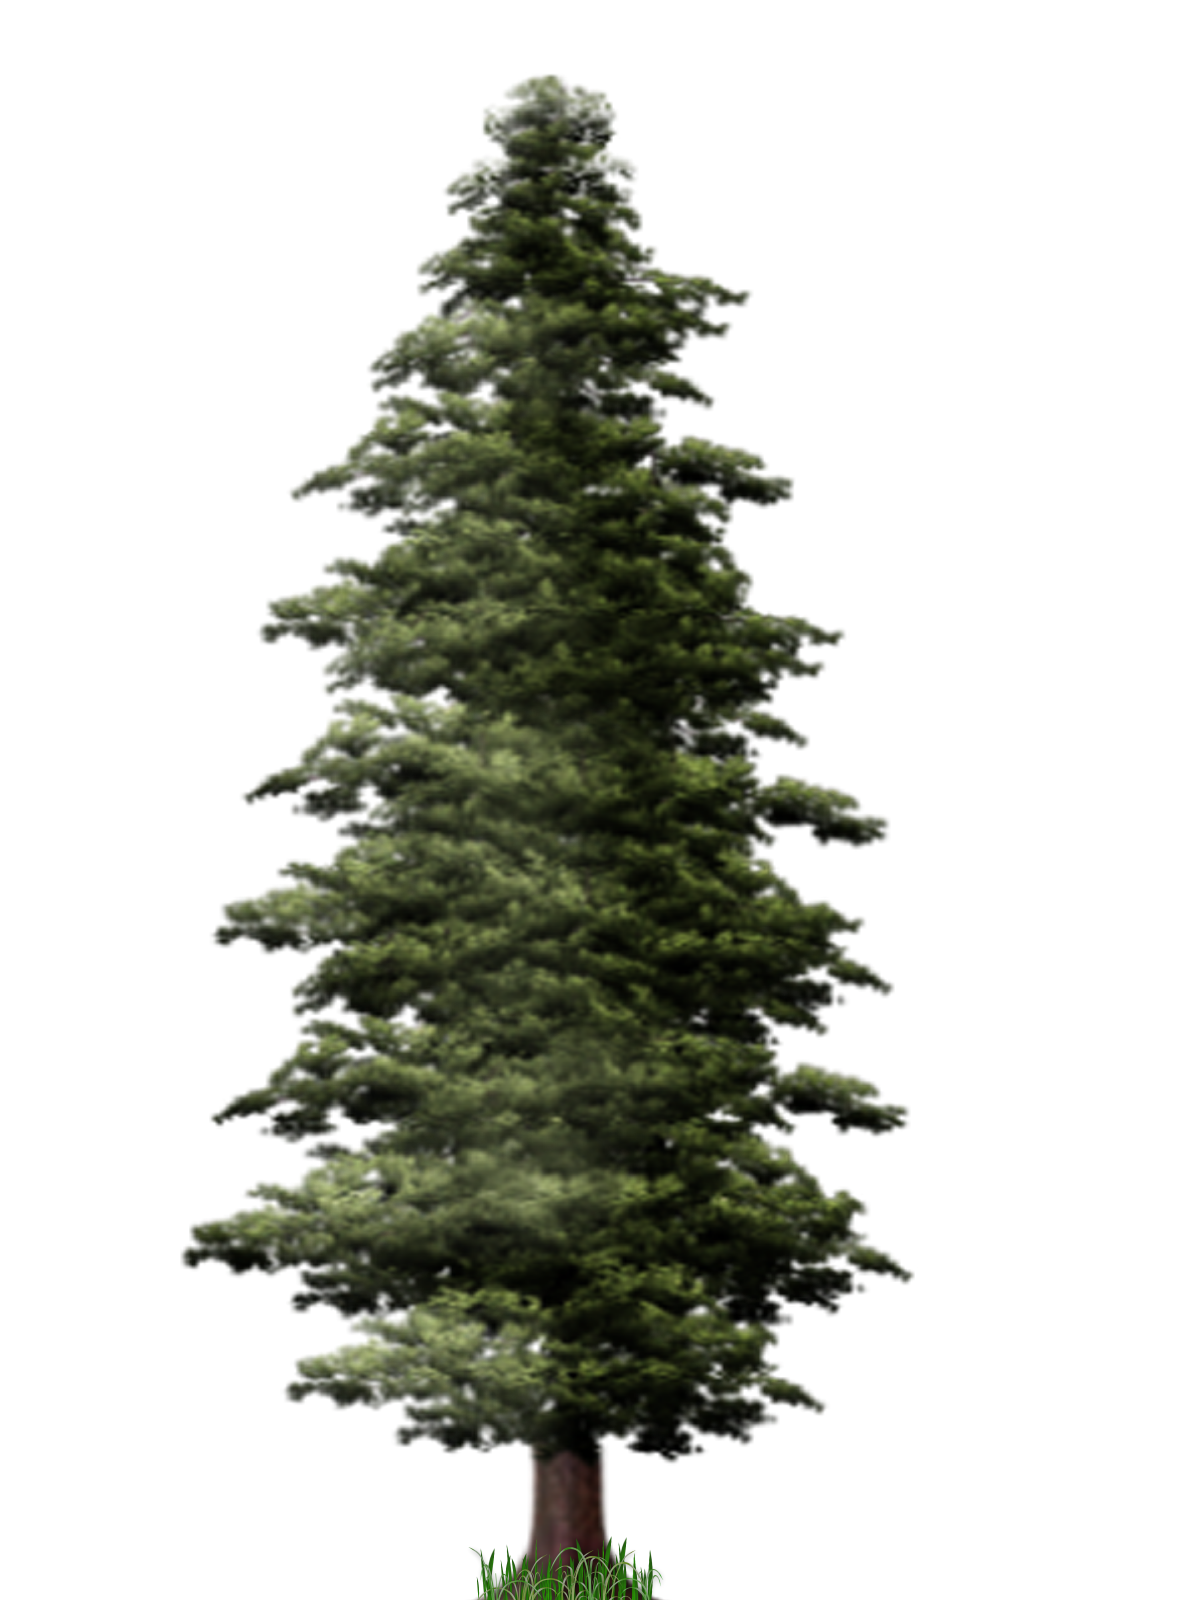 Pine Tree File PNG Image